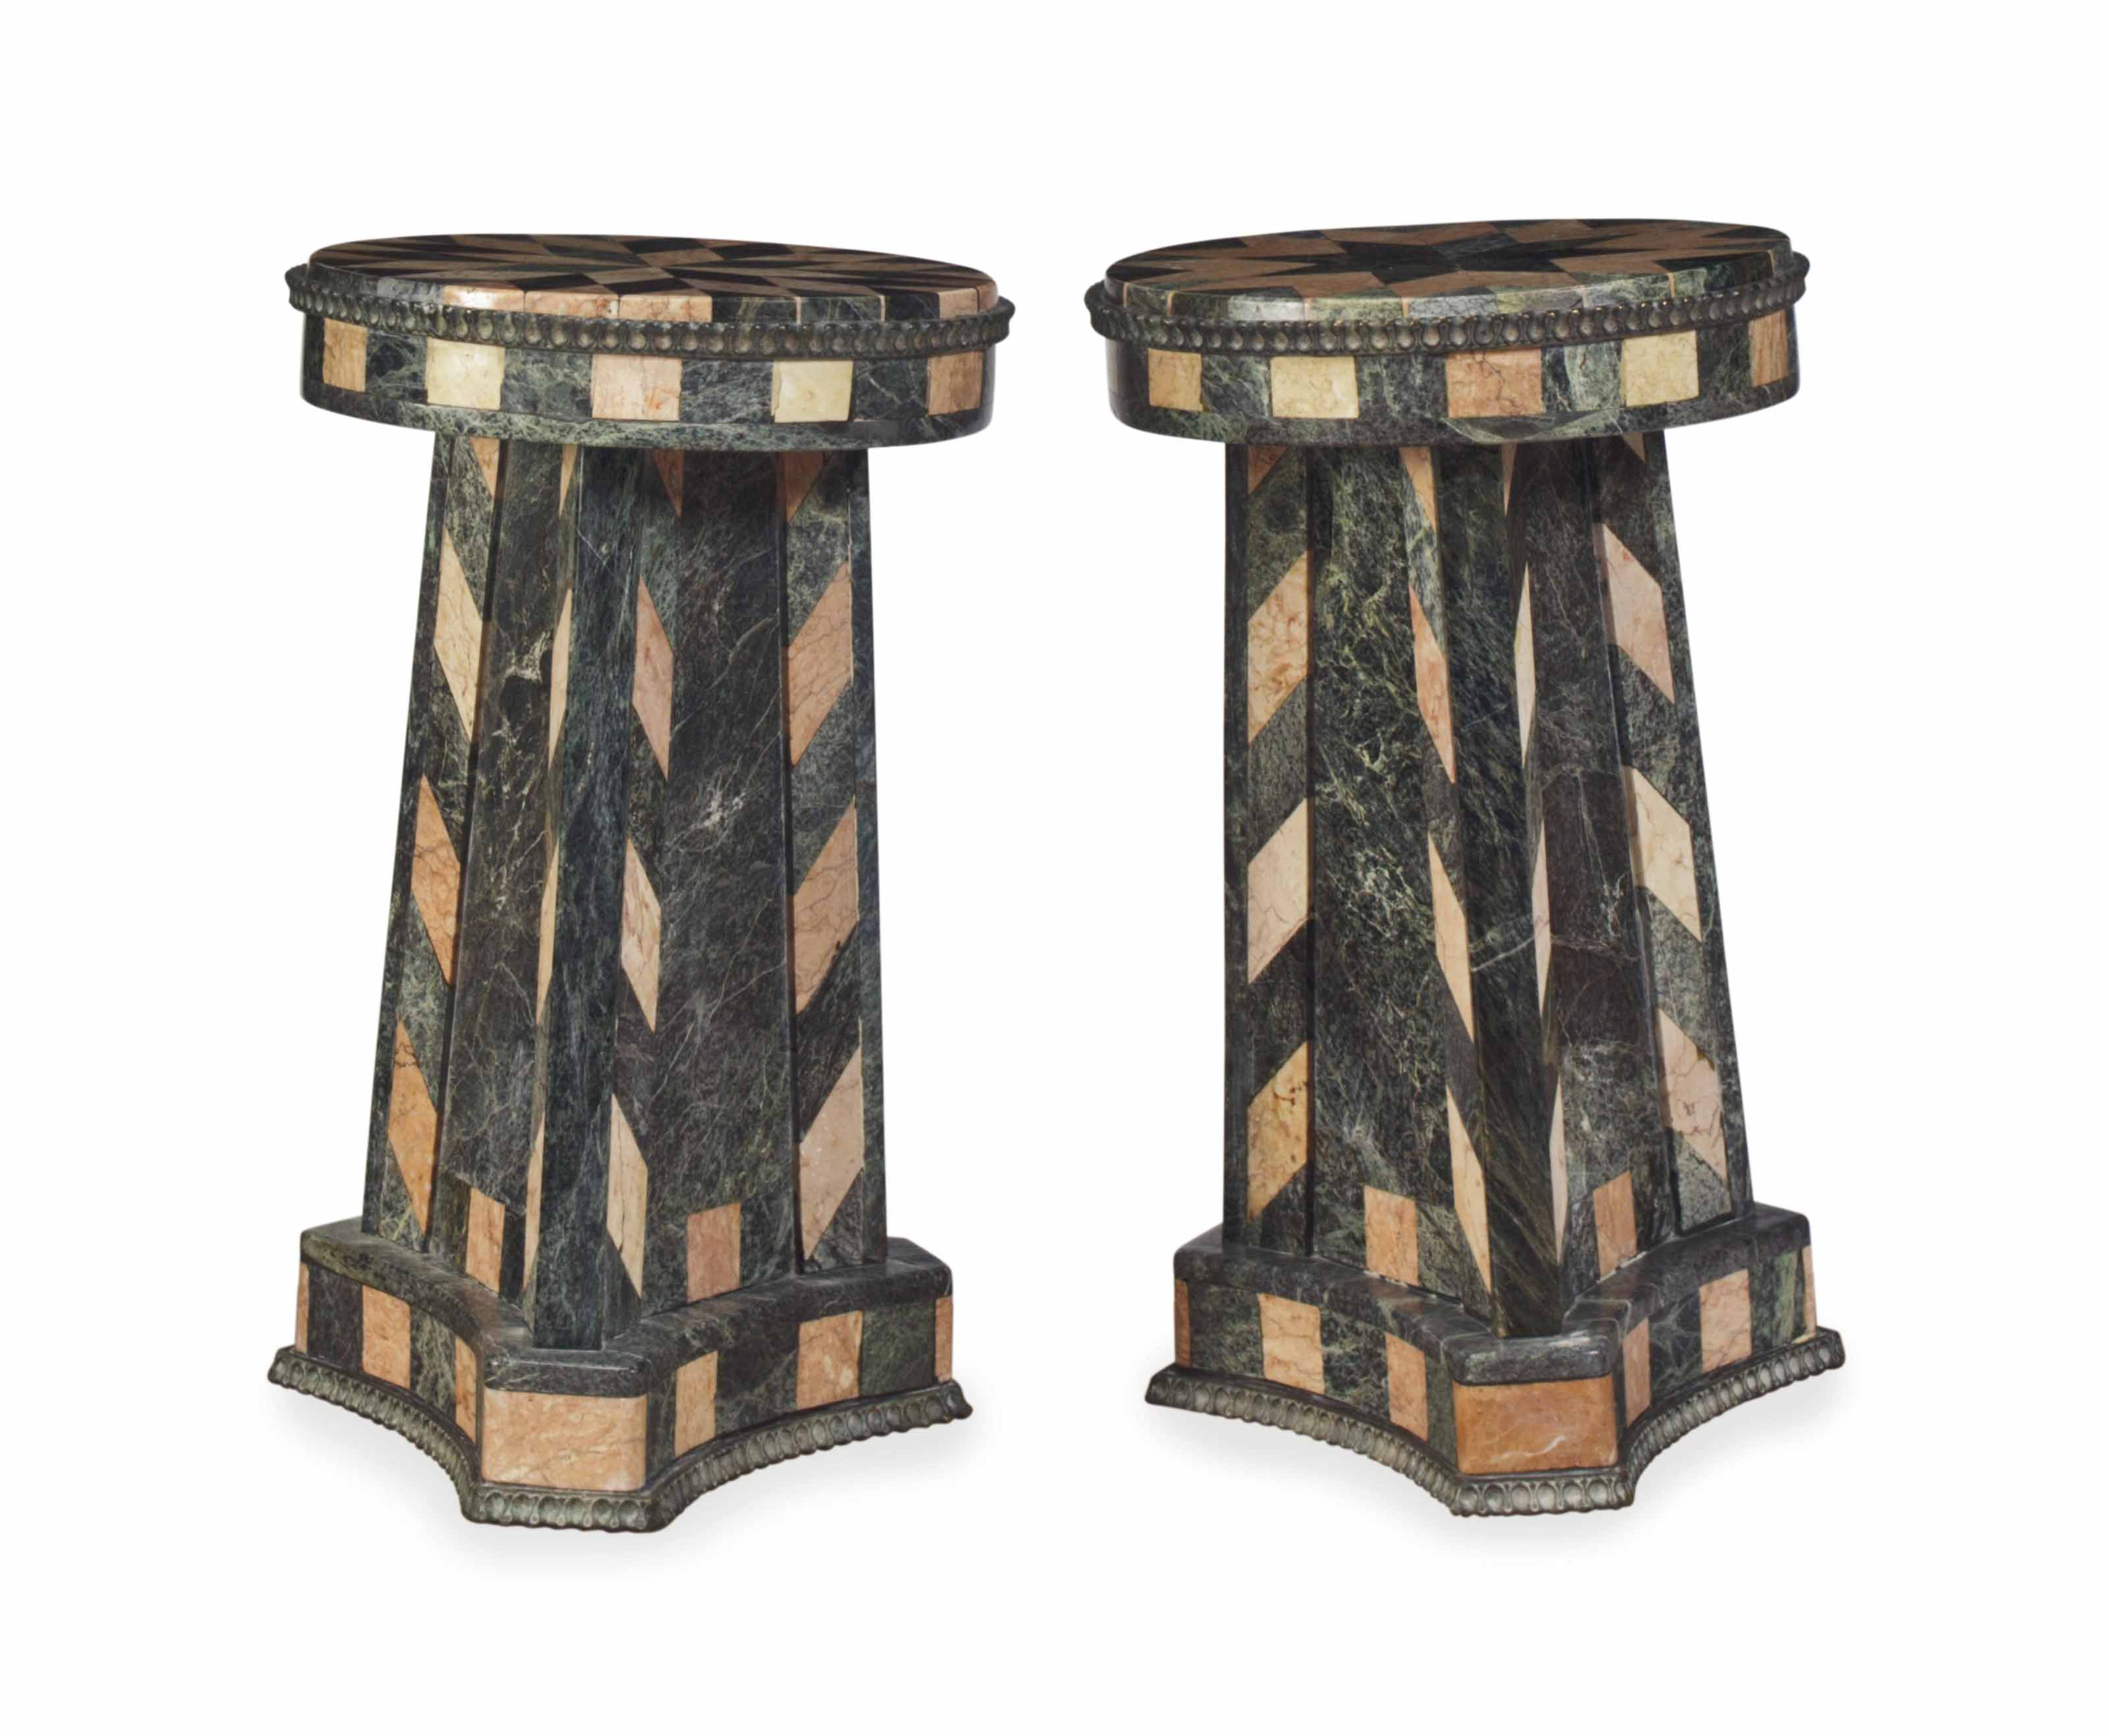 A NEAR PAIR OF CONTINENTAL BRONZE-MOUNTED INLAID-MARBLE VENEERED SIDE TABLES,